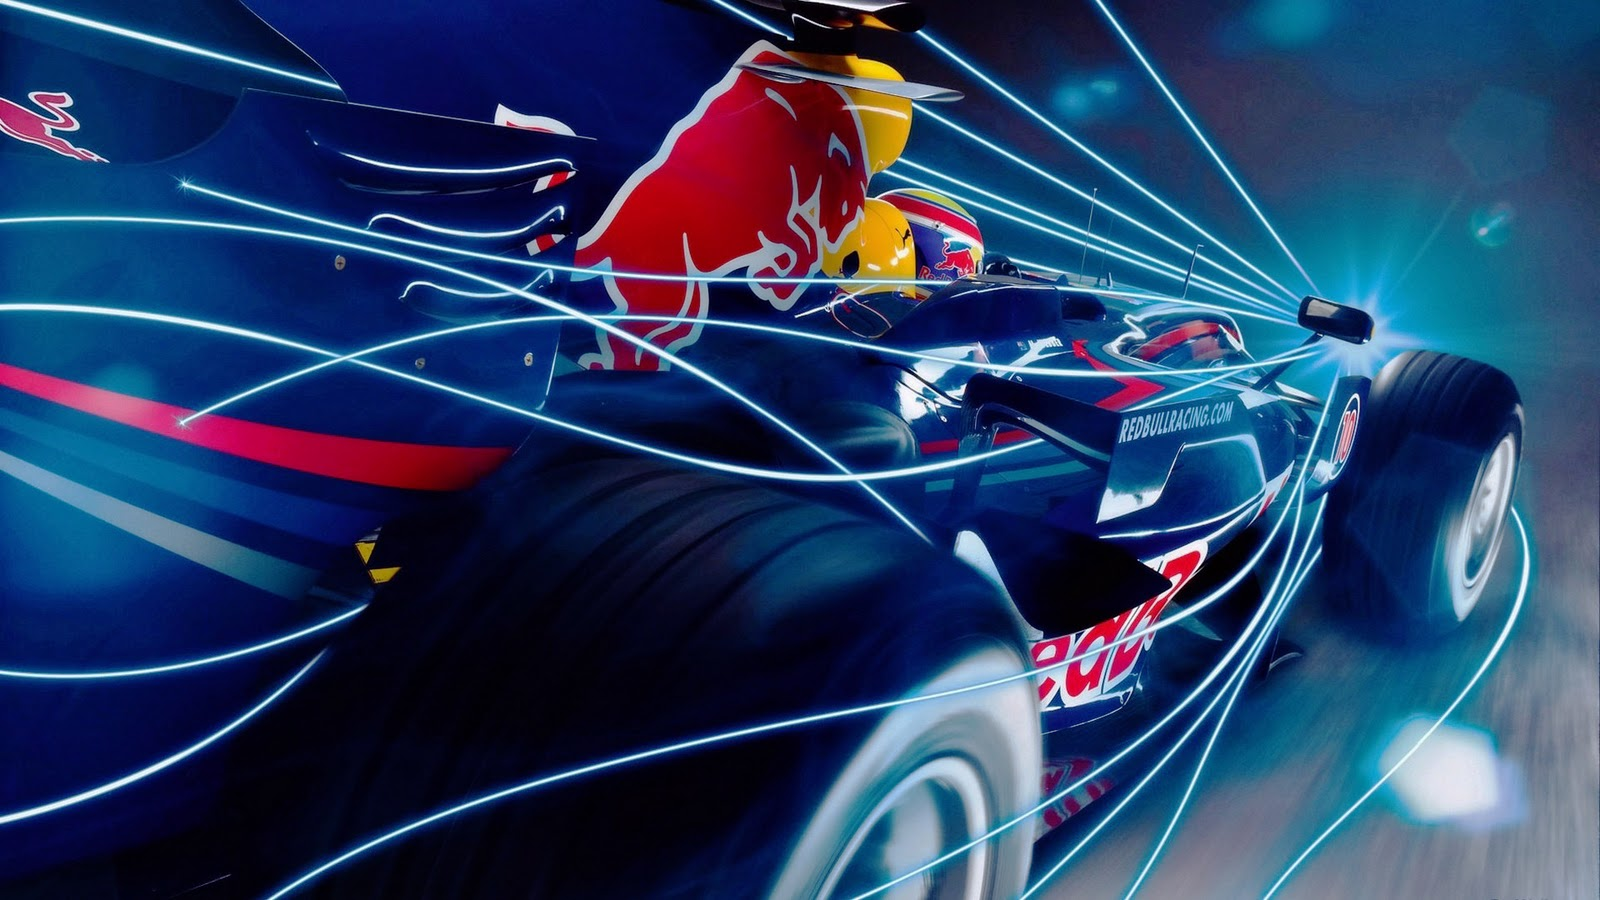 http://3.bp.blogspot.com/-KQ8sbVMAmlg/TnjCTjoAU-I/AAAAAAAABM4/1YyVJb6Haq4/s1600/Red_Bull_F1_Car_HD_Wallpaper_Art_HD_Wallpaper_Vvallpaper.Net.jpg